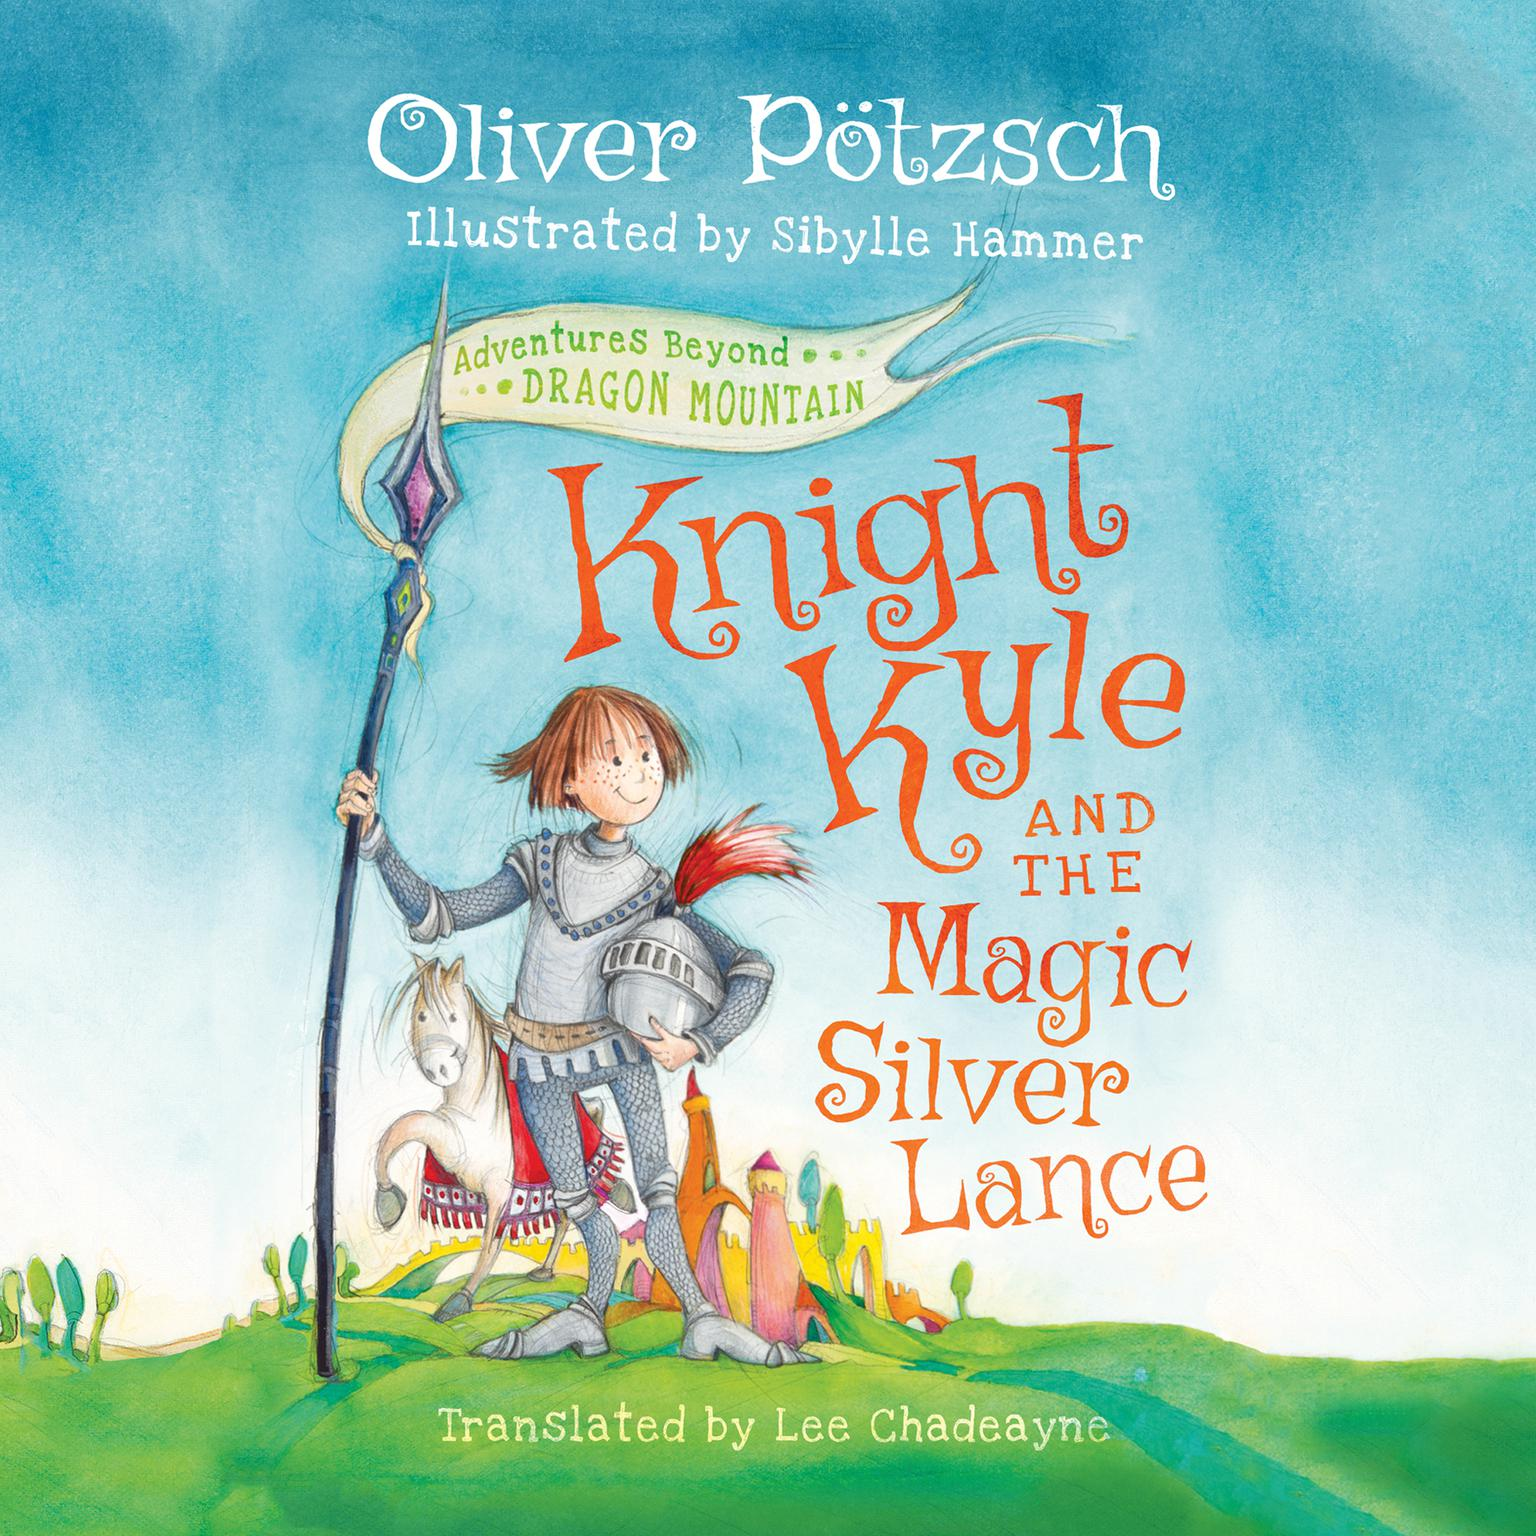 Printable Knight Kyle and the Magic Silver Lance Audiobook Cover Art